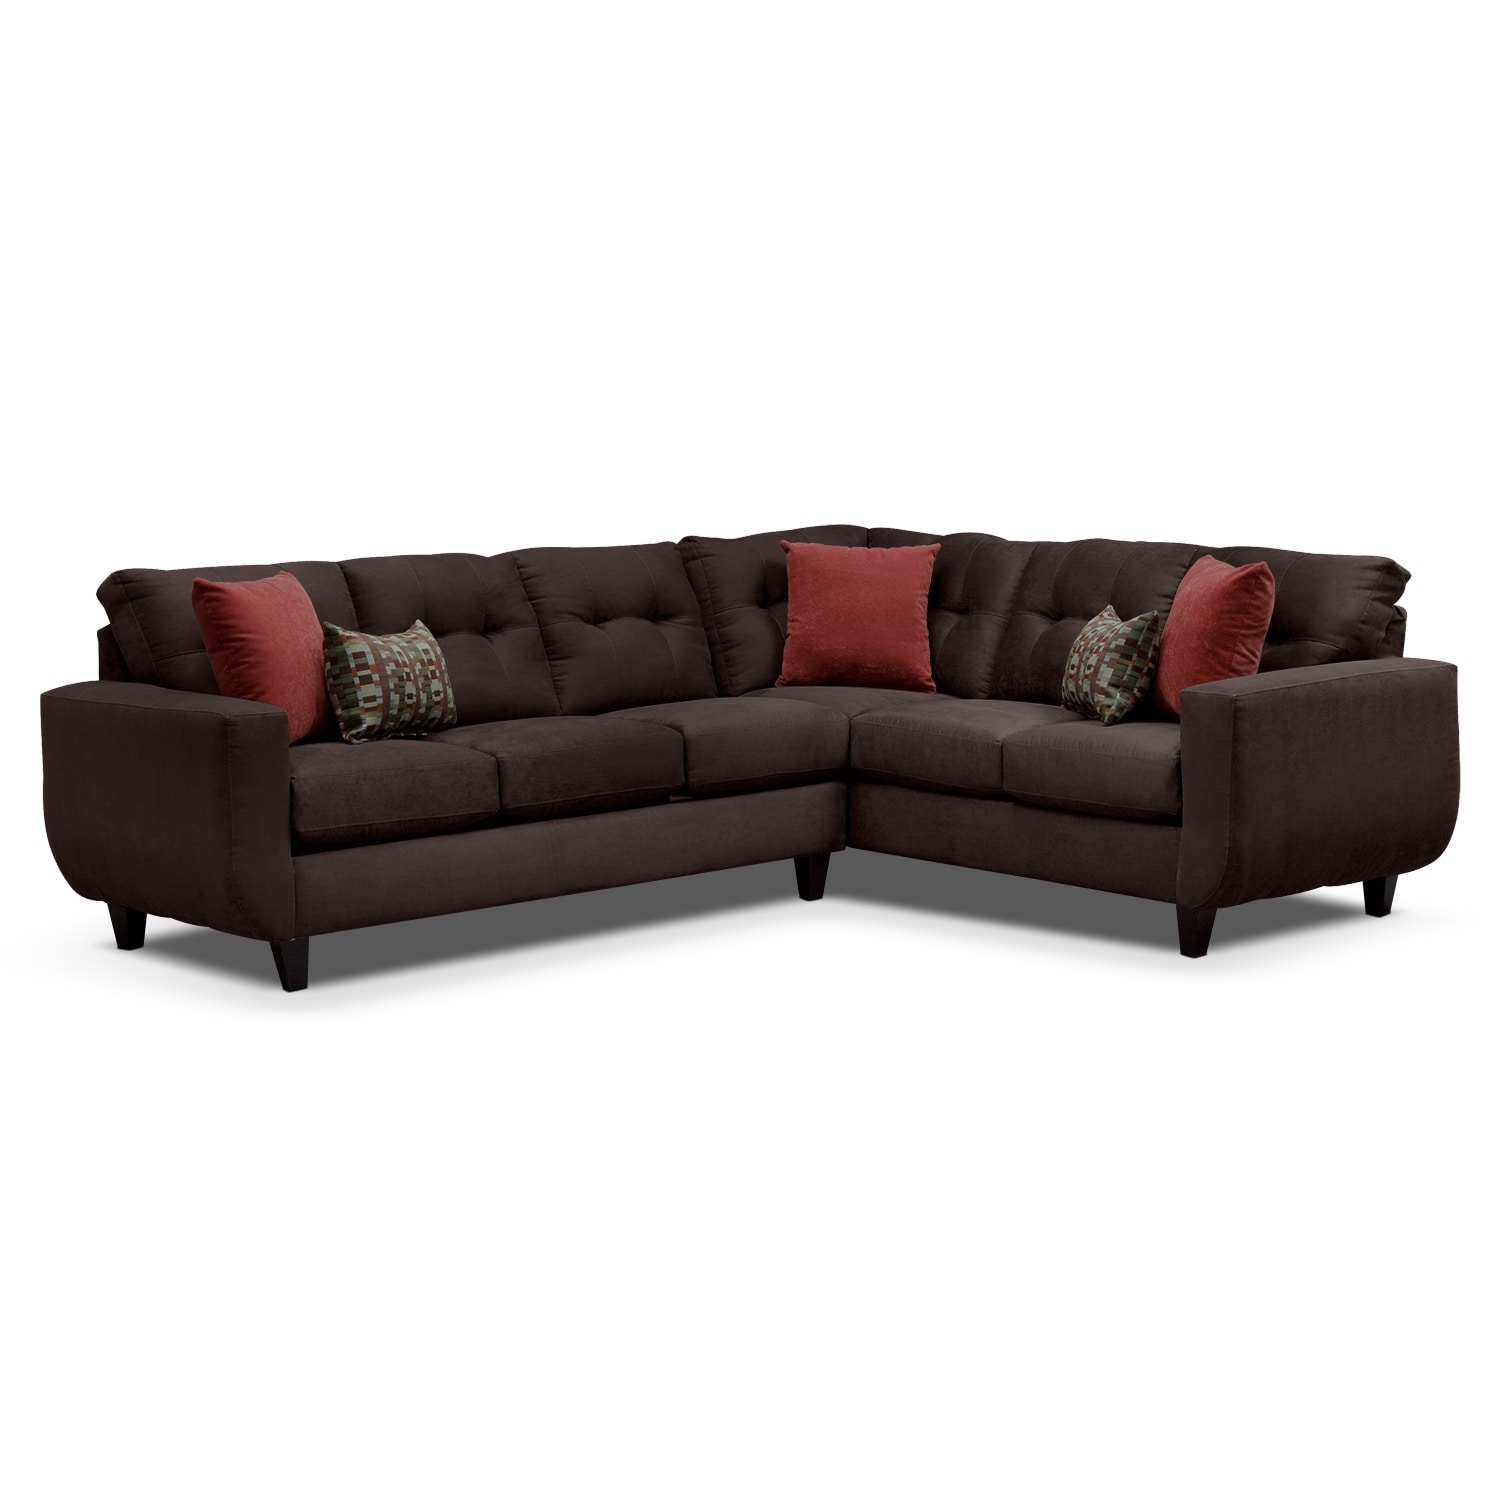 West Village Chocolate Ii Upholstery 2 Pc Sectional Value City Furniture